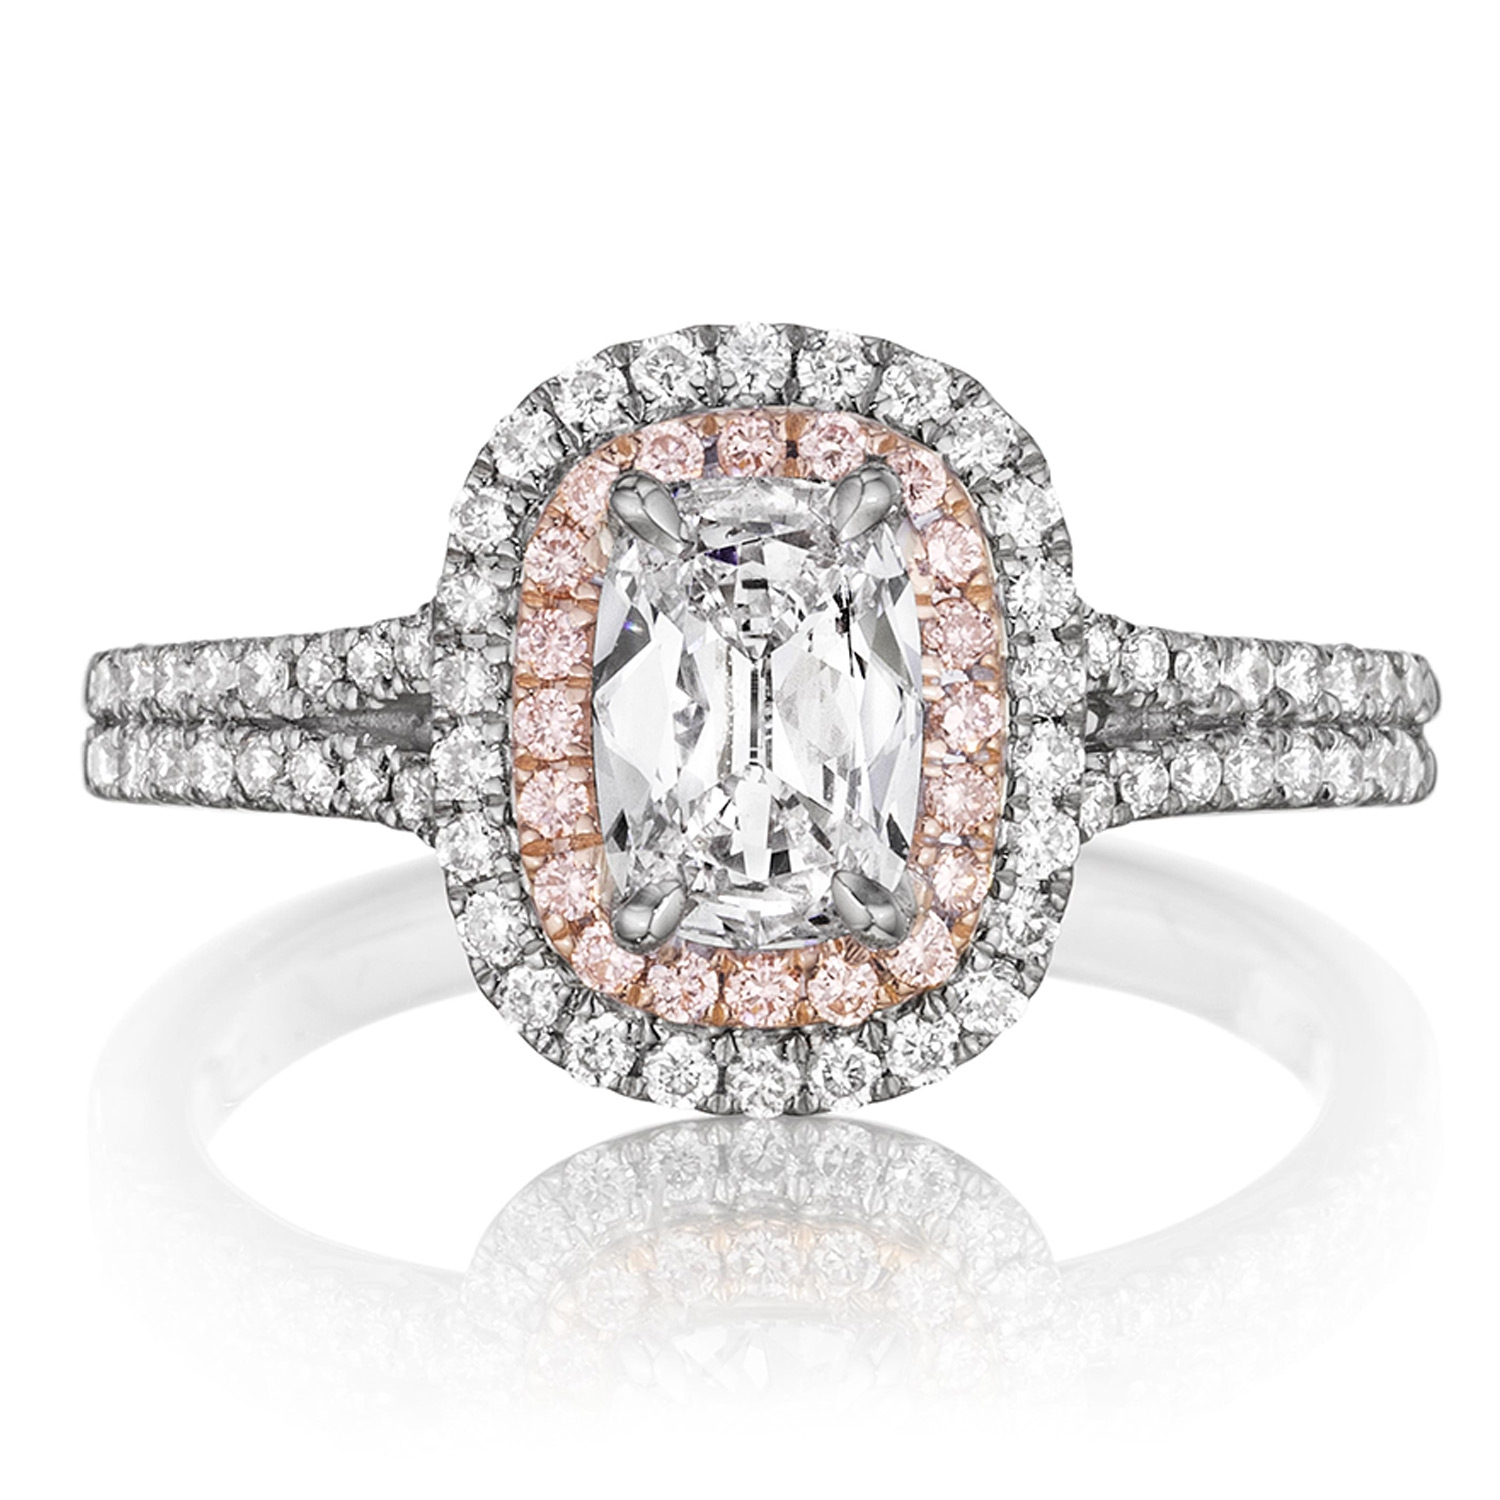 ed1085a5a1171 Henri Daussi ADTP Double Cushion Halo with Pink Diamonds Engagement Ring